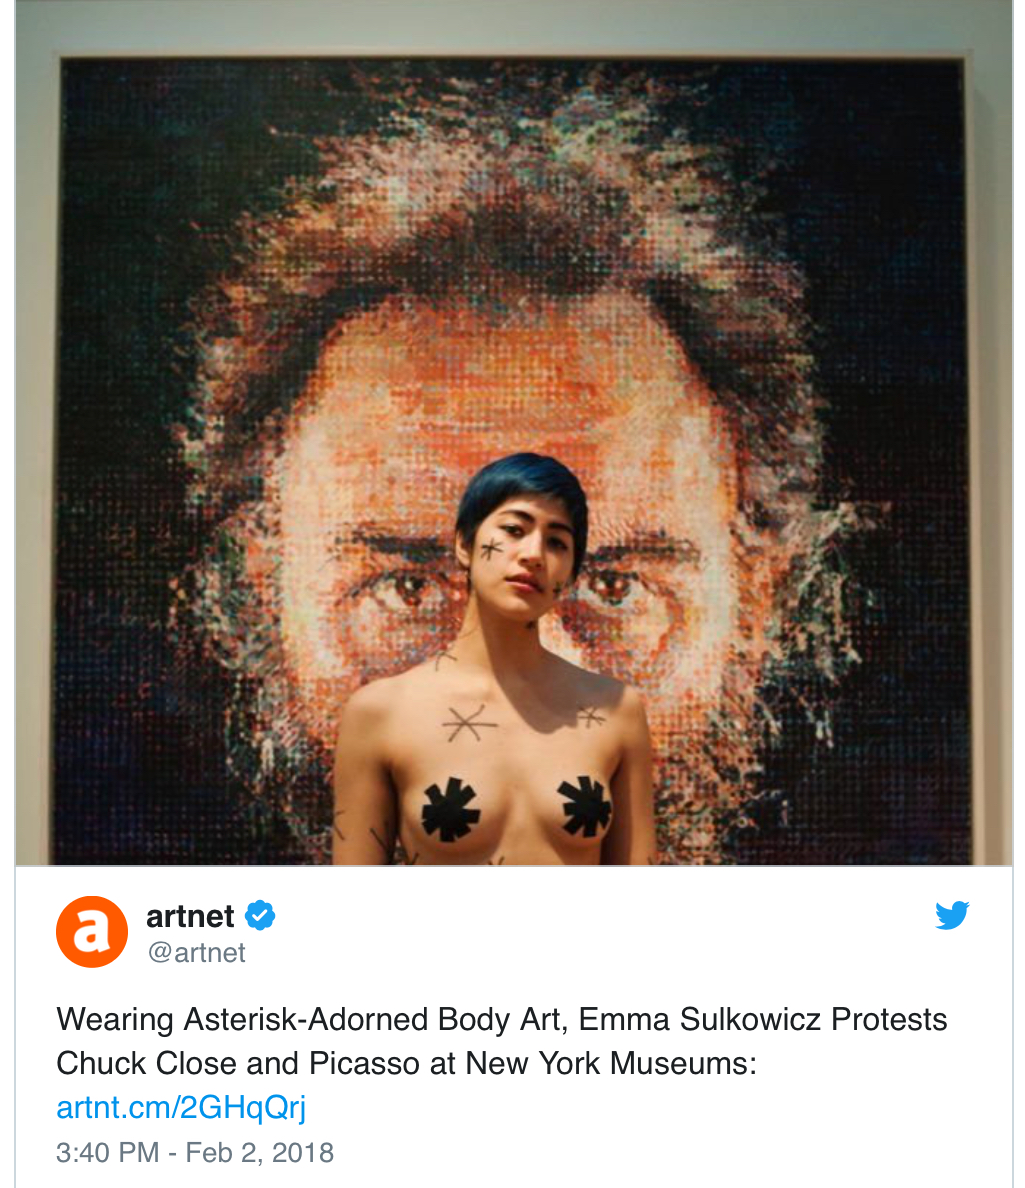 Chuck Close has been accused of assault by upwards of 30 women- many museums have suggested adding an asterisk to artwork that is the result of sexual assault (Via Jezebel)